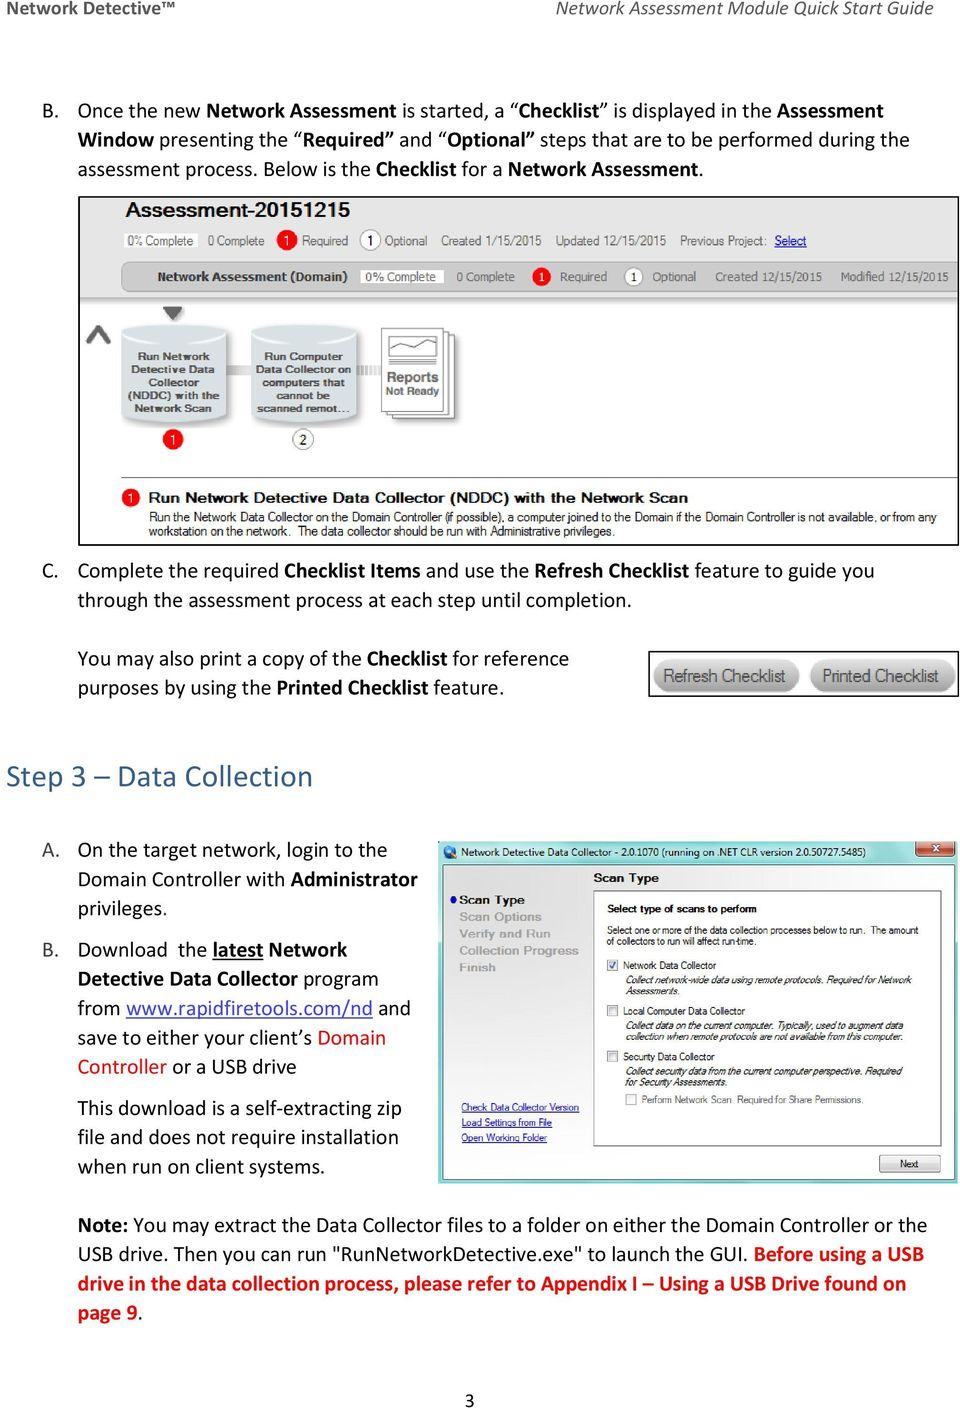 Peachtree 2015 user guide nav 2015 availability localization and translation guide array network detective network assessment module using the new network rh docplayer net fandeluxe Gallery